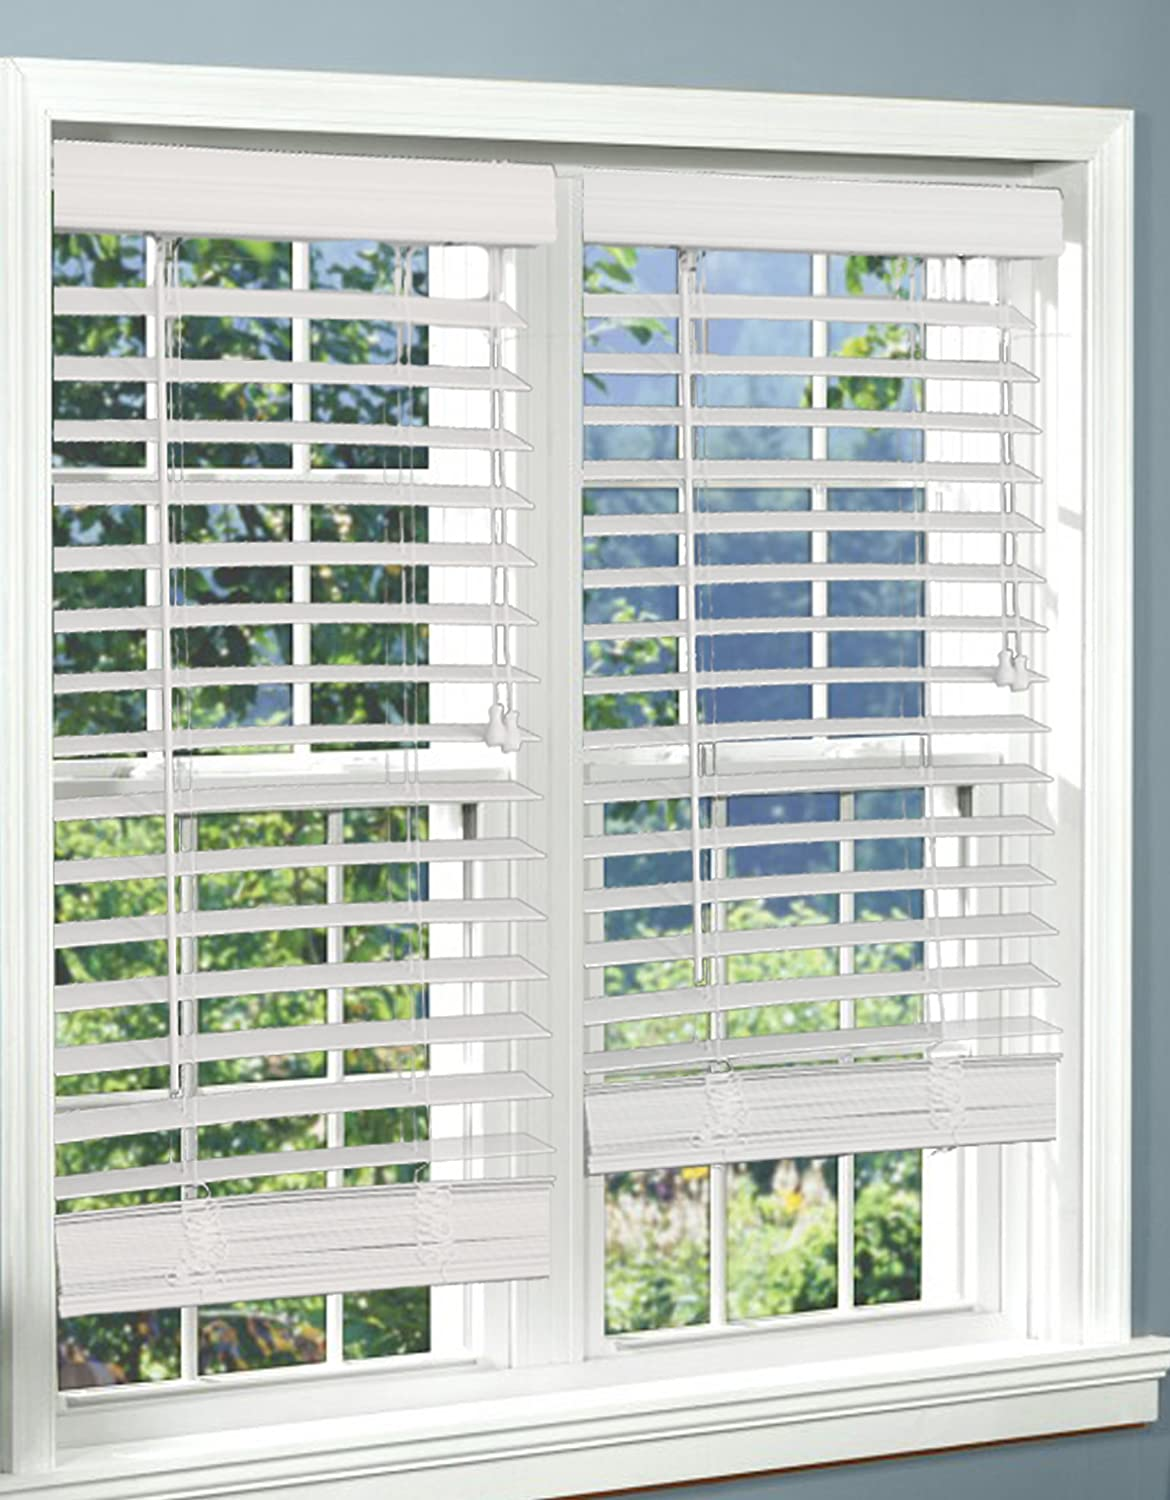 DEZ Furnishings QAWT330480 Corded 2 Inch Faux Wood Blind, White, 33W x 48L Inches